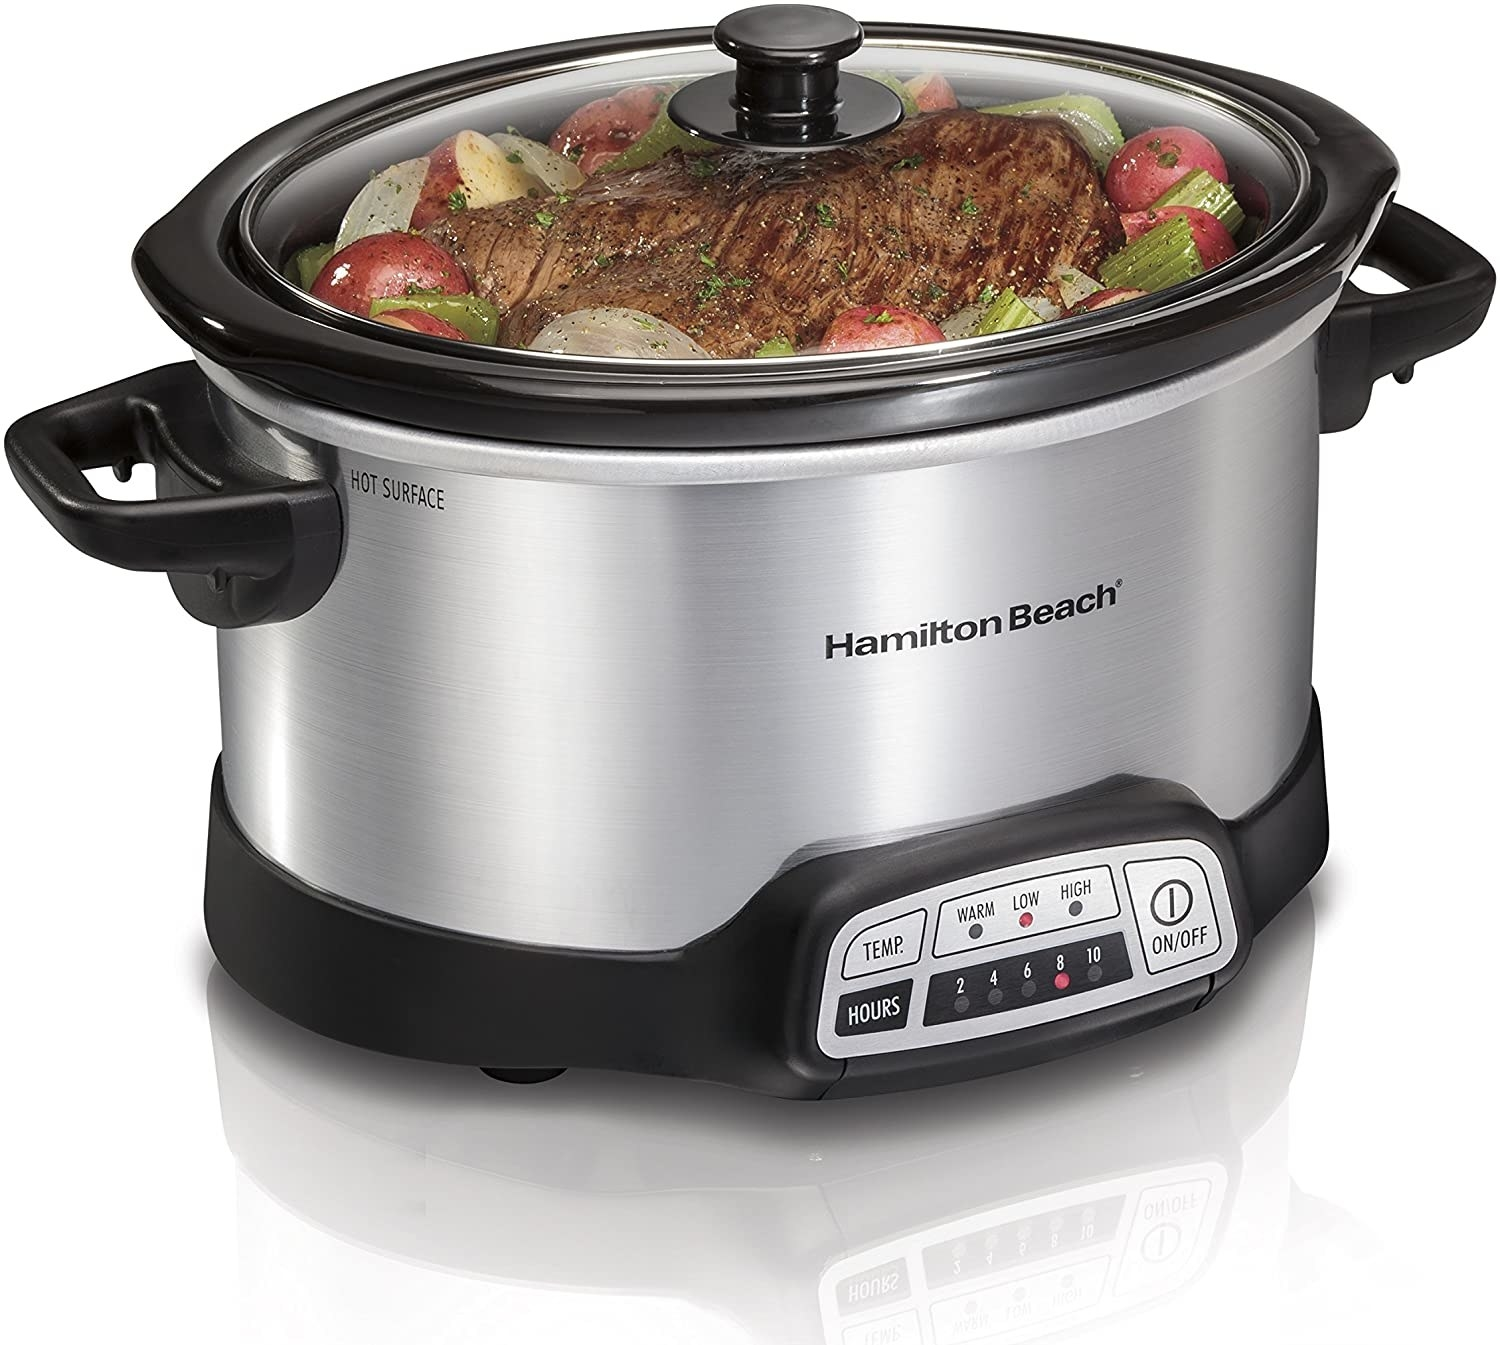 The Hamilton Beach slow cooker